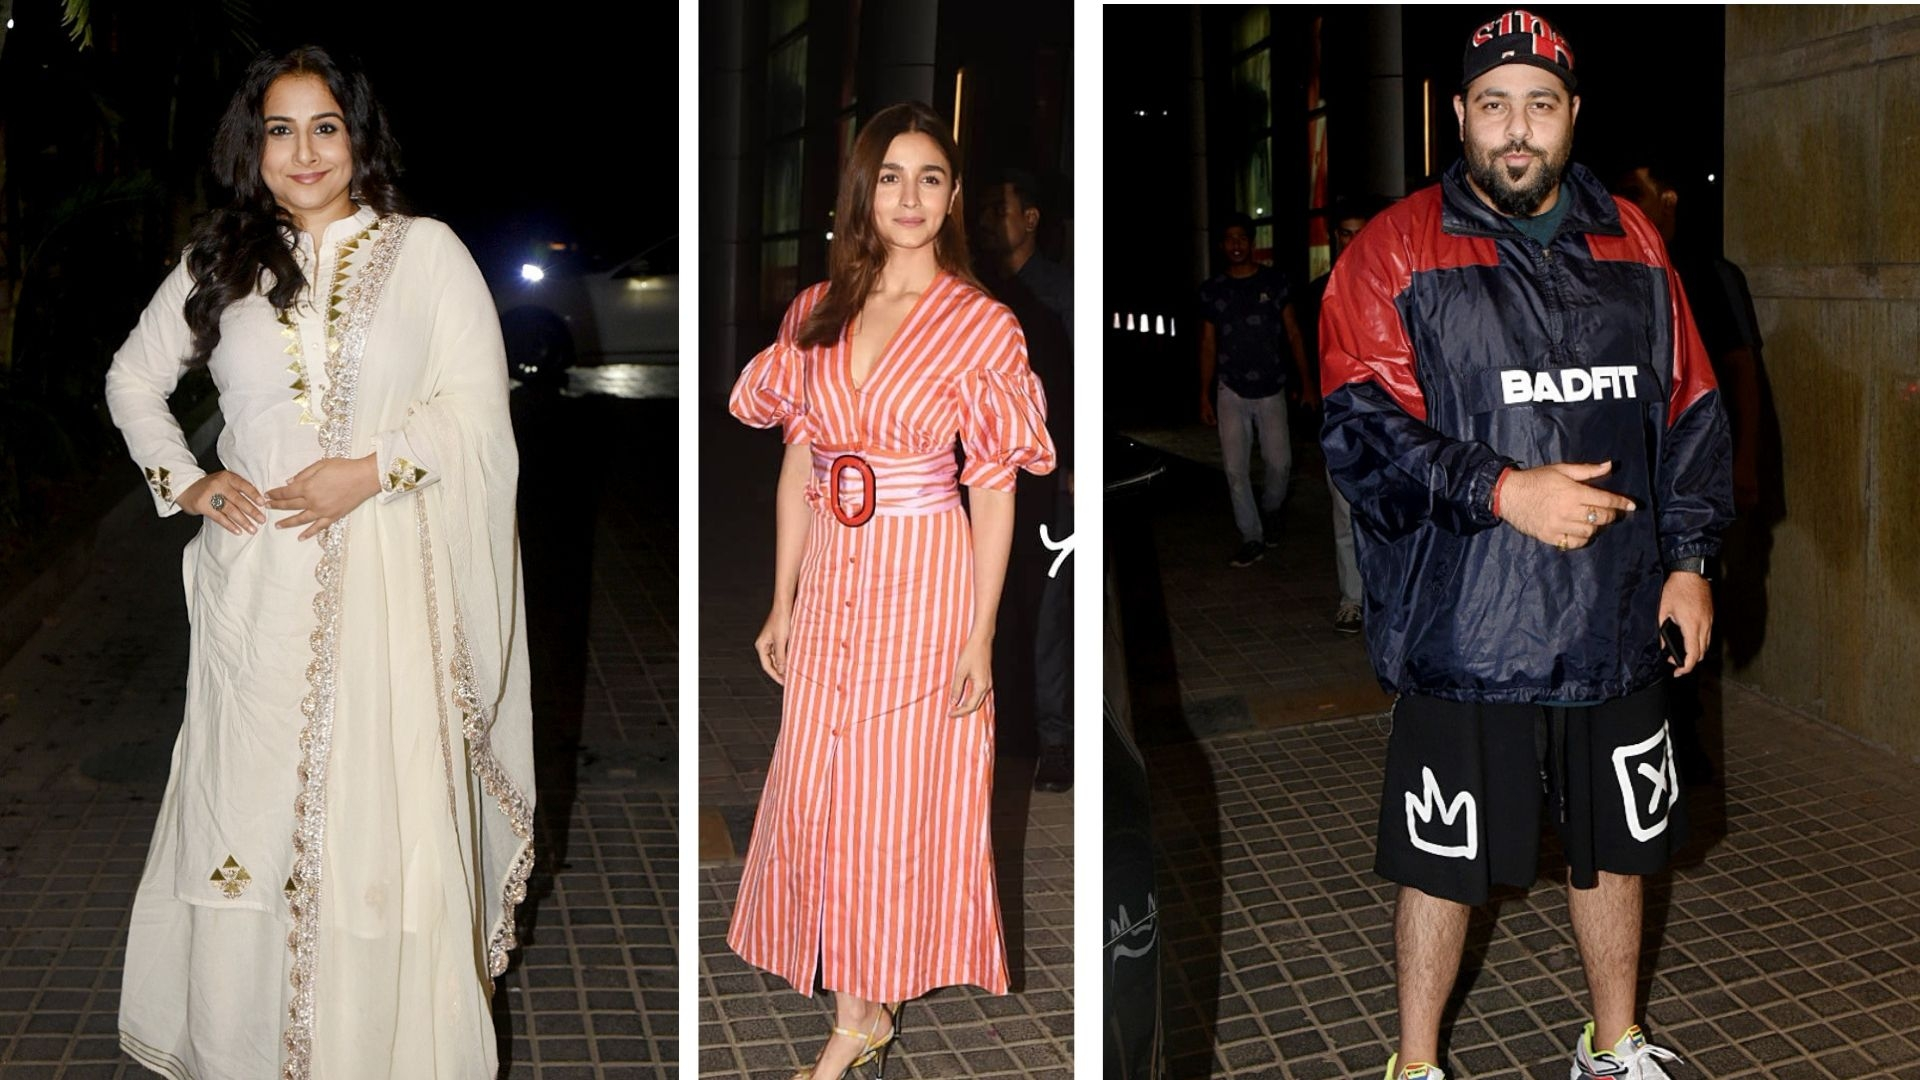 Pics: Vidya Balan, Alia Bhatt Attend India's Most Wanted Screening